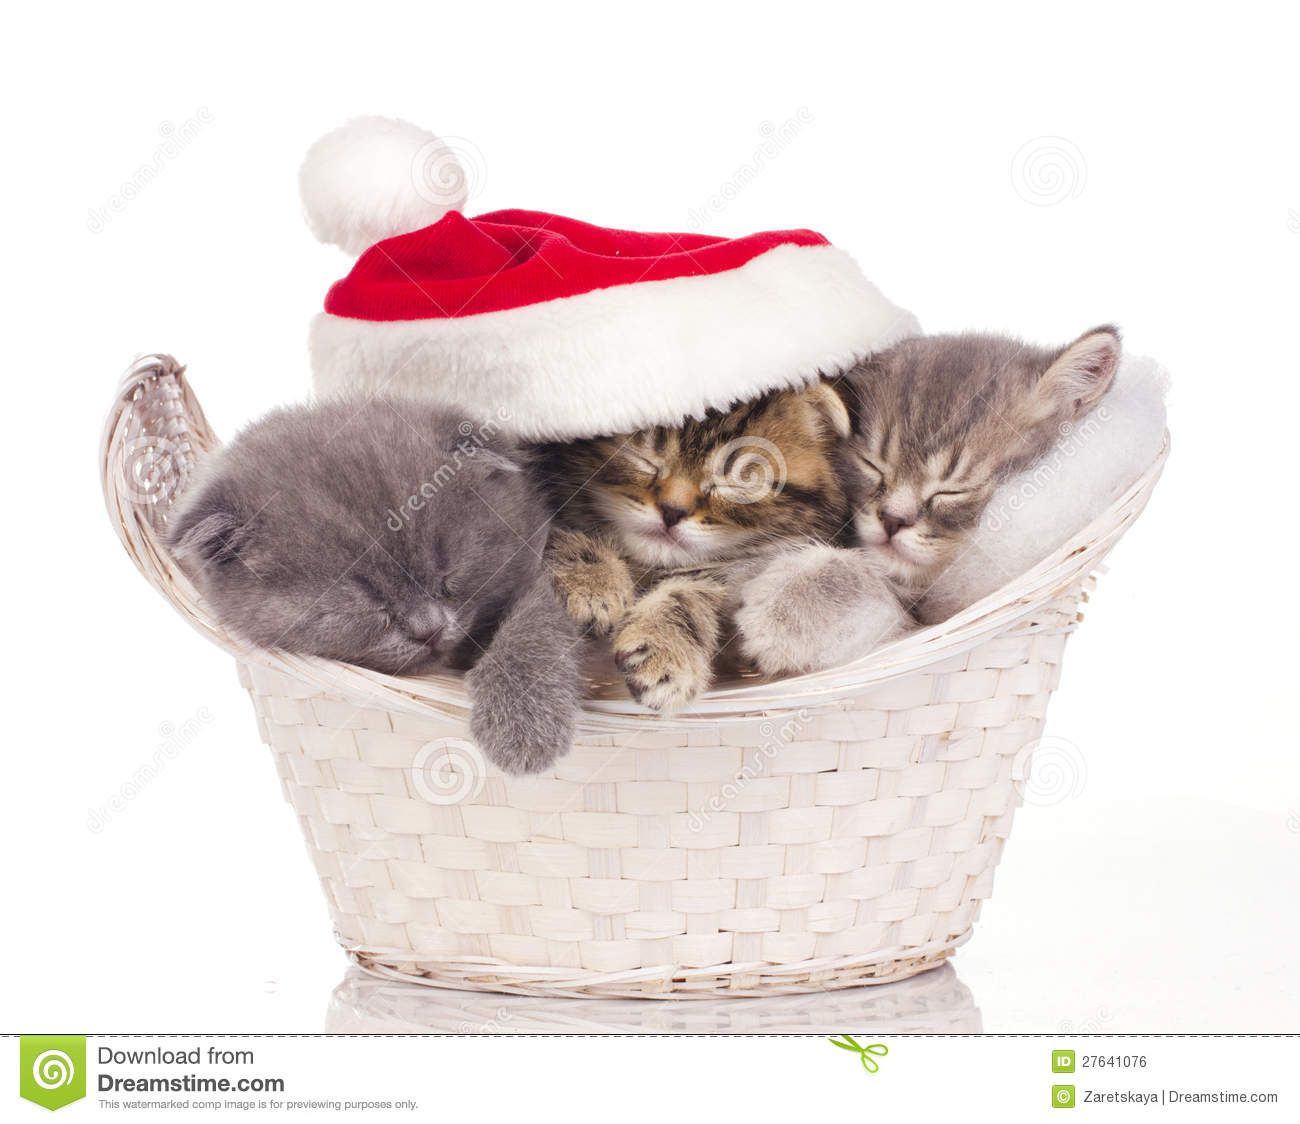 Kittens sleeping with a Santa hat over them.